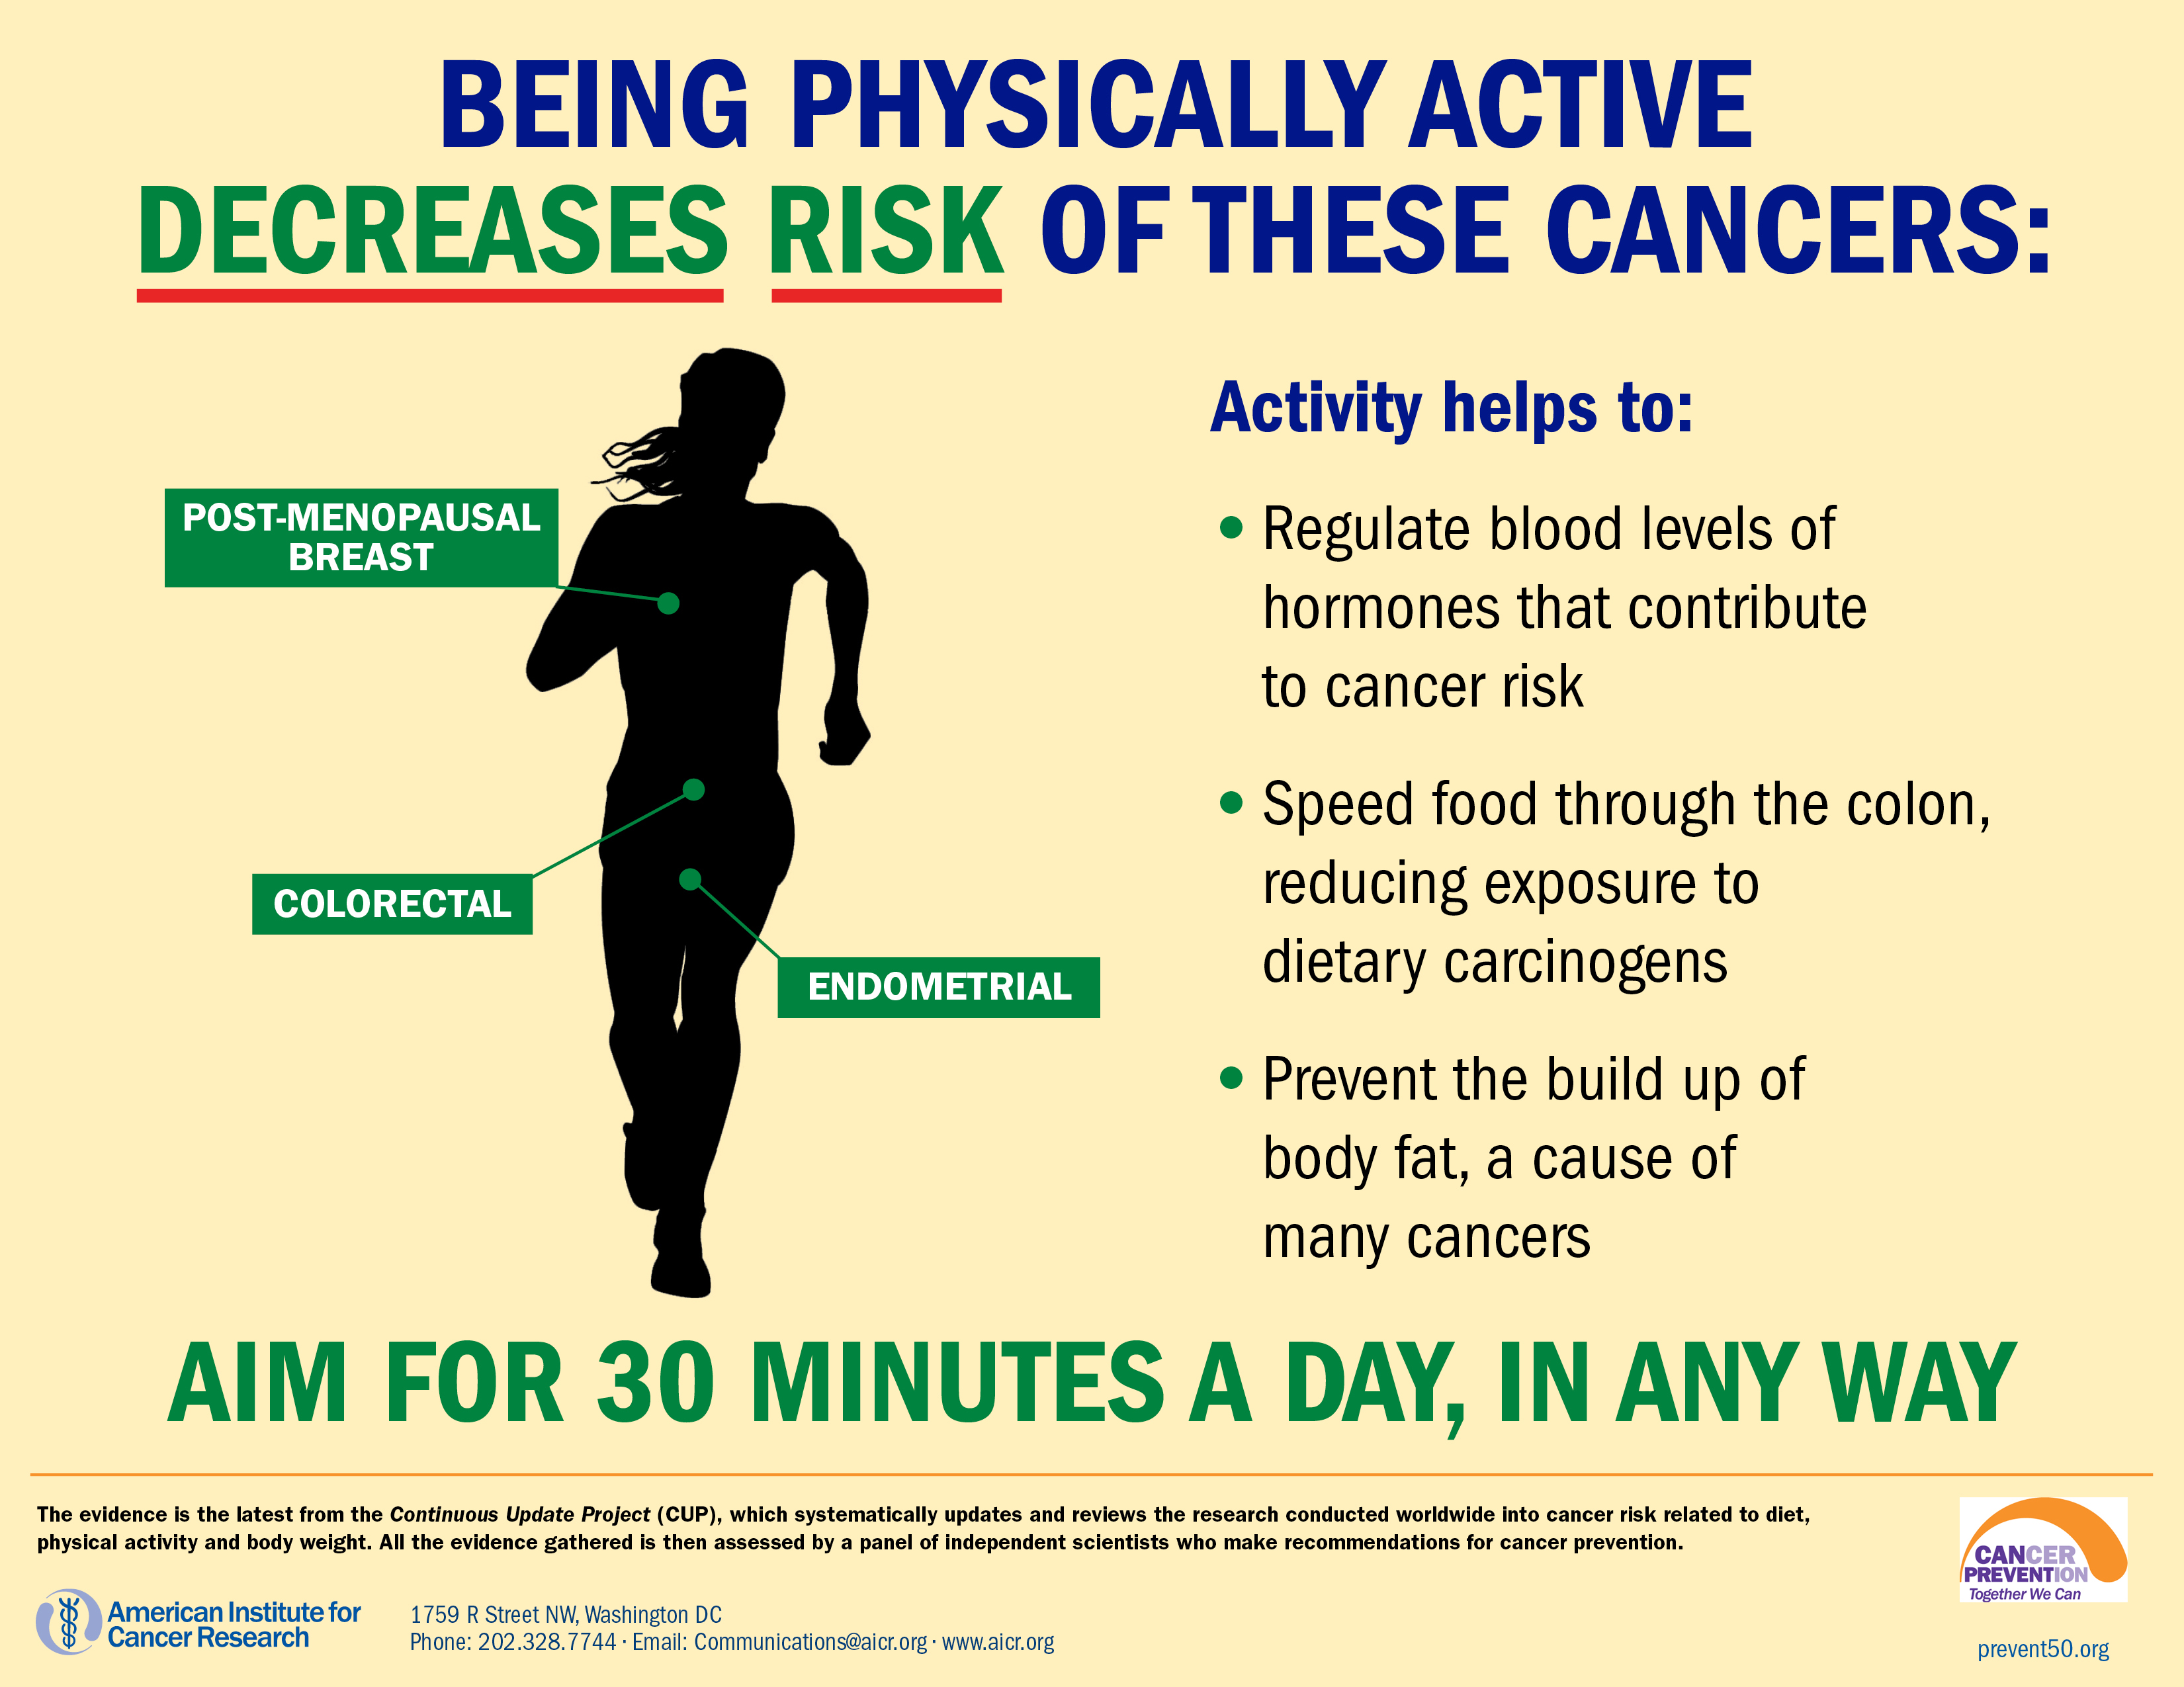 Exercise reduces risk of breast cancer